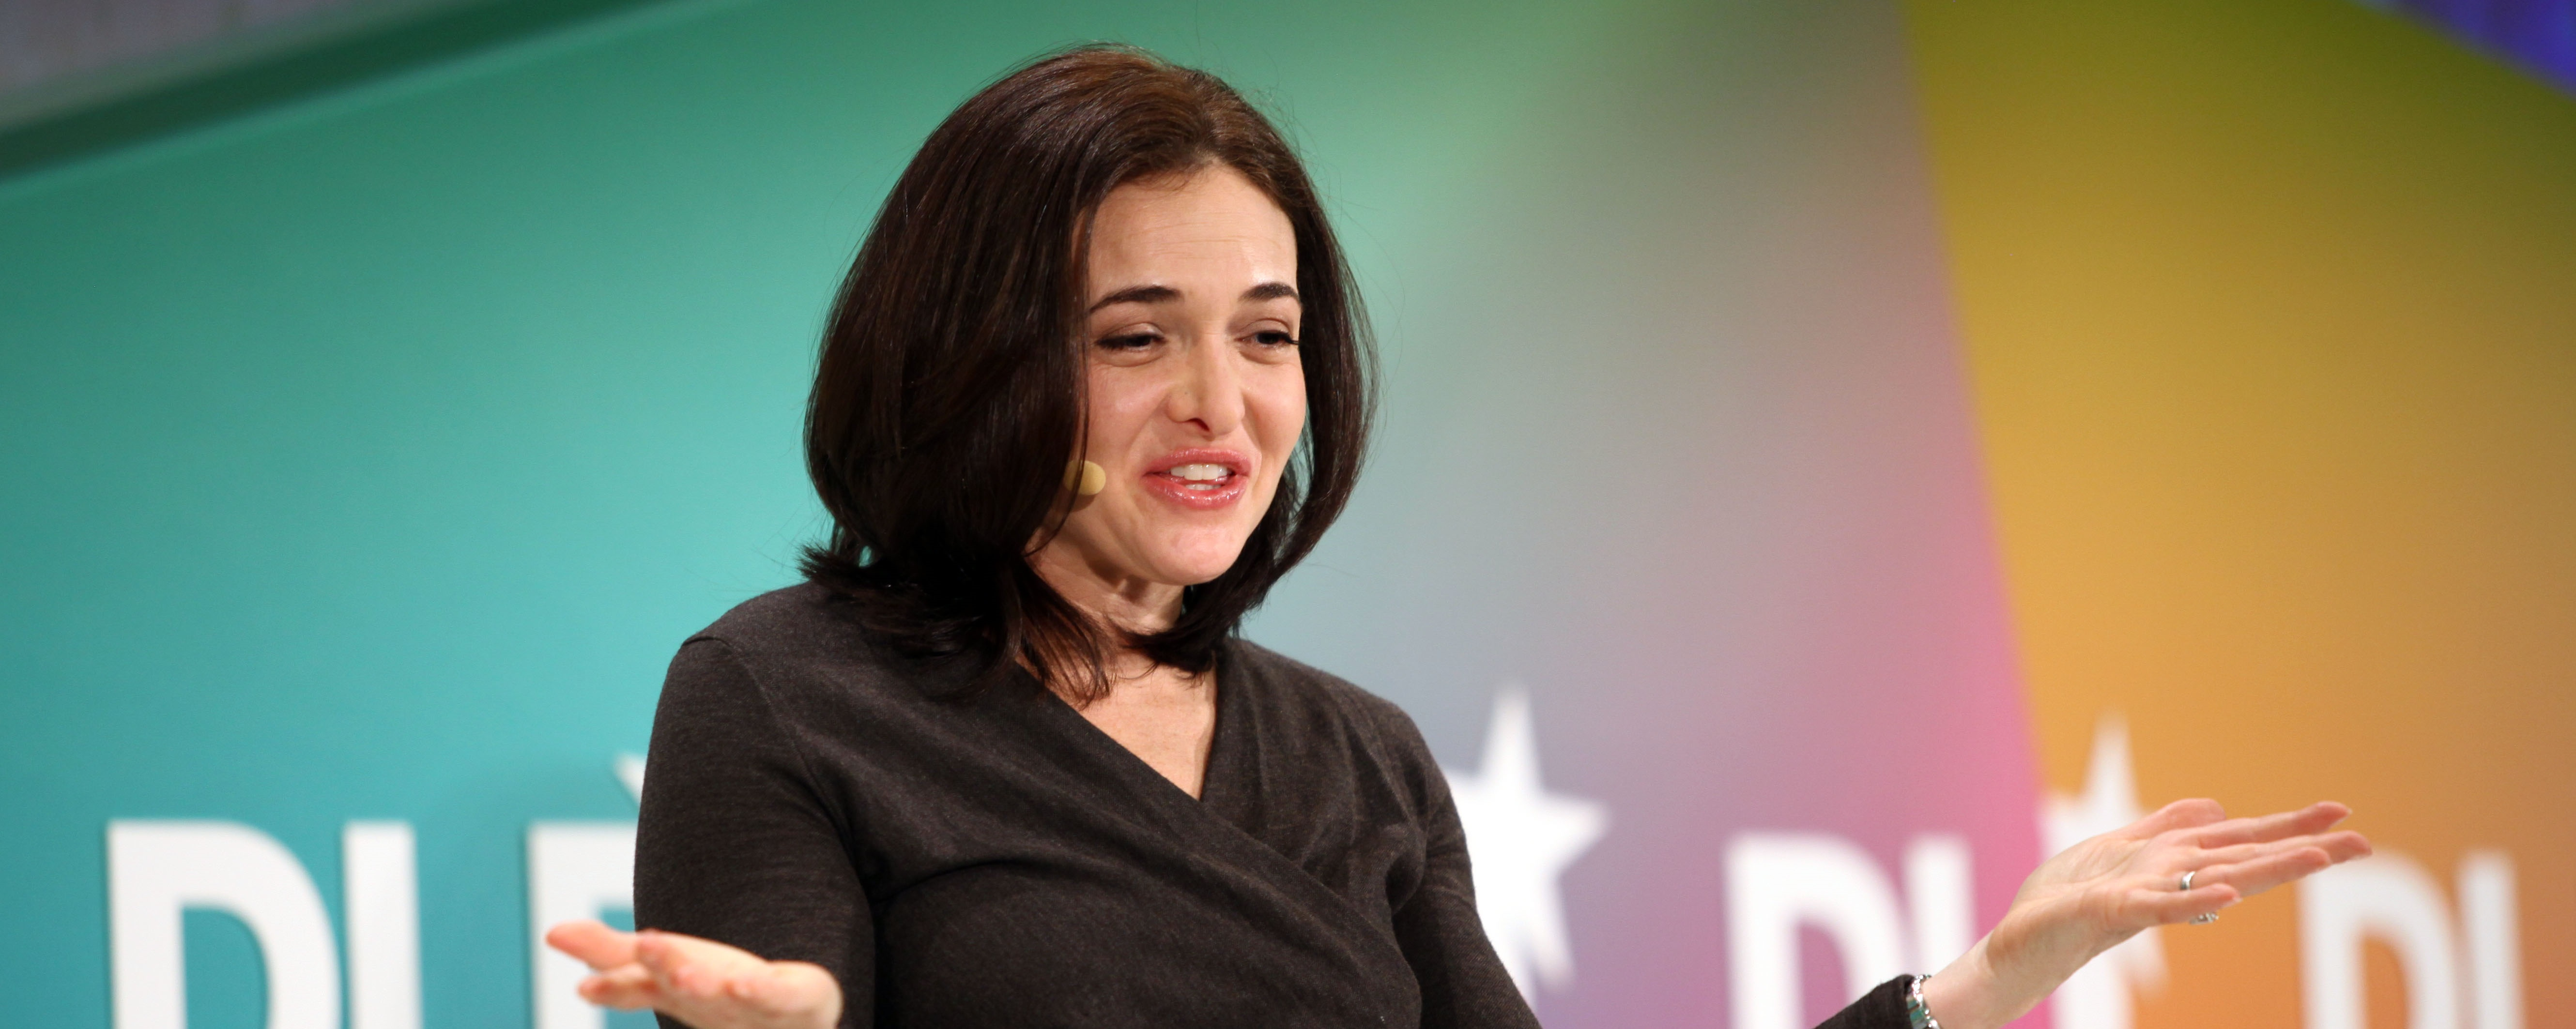 7 Famous Jewish Women in Business